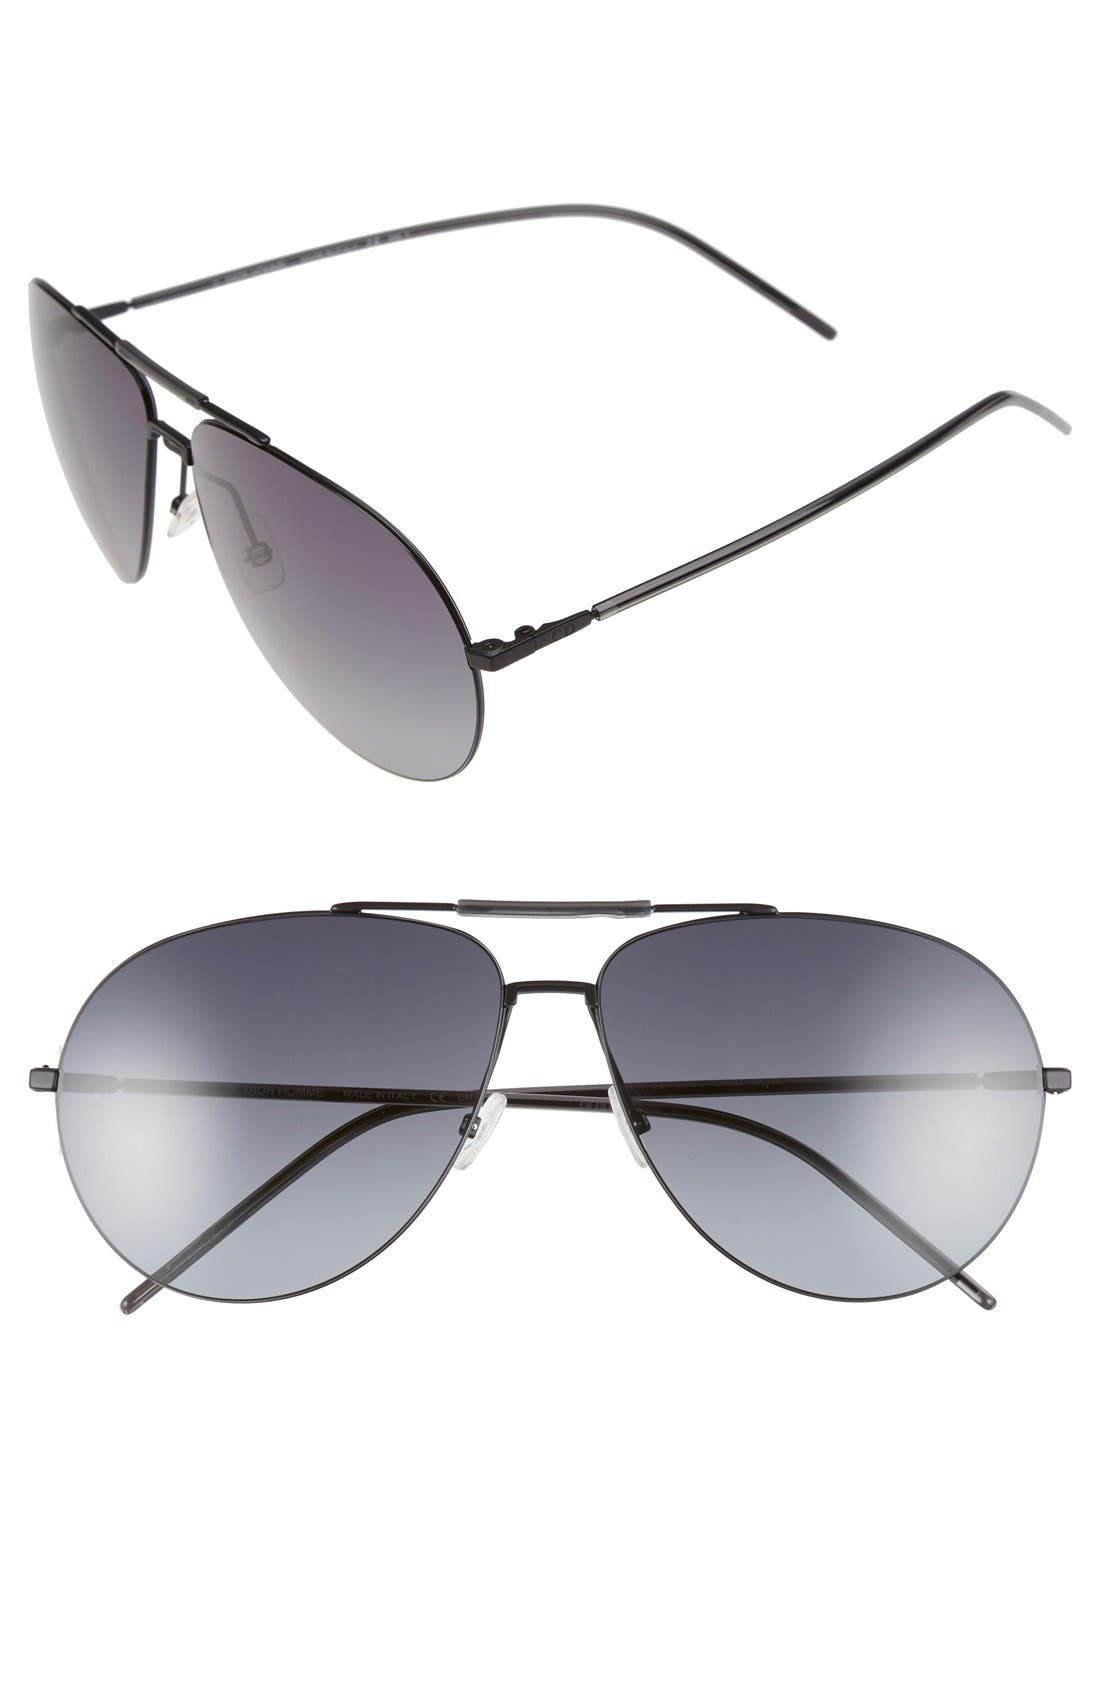 62mm Aviator Sunglasses,                         Main,                         color, Black Grey/ Grey